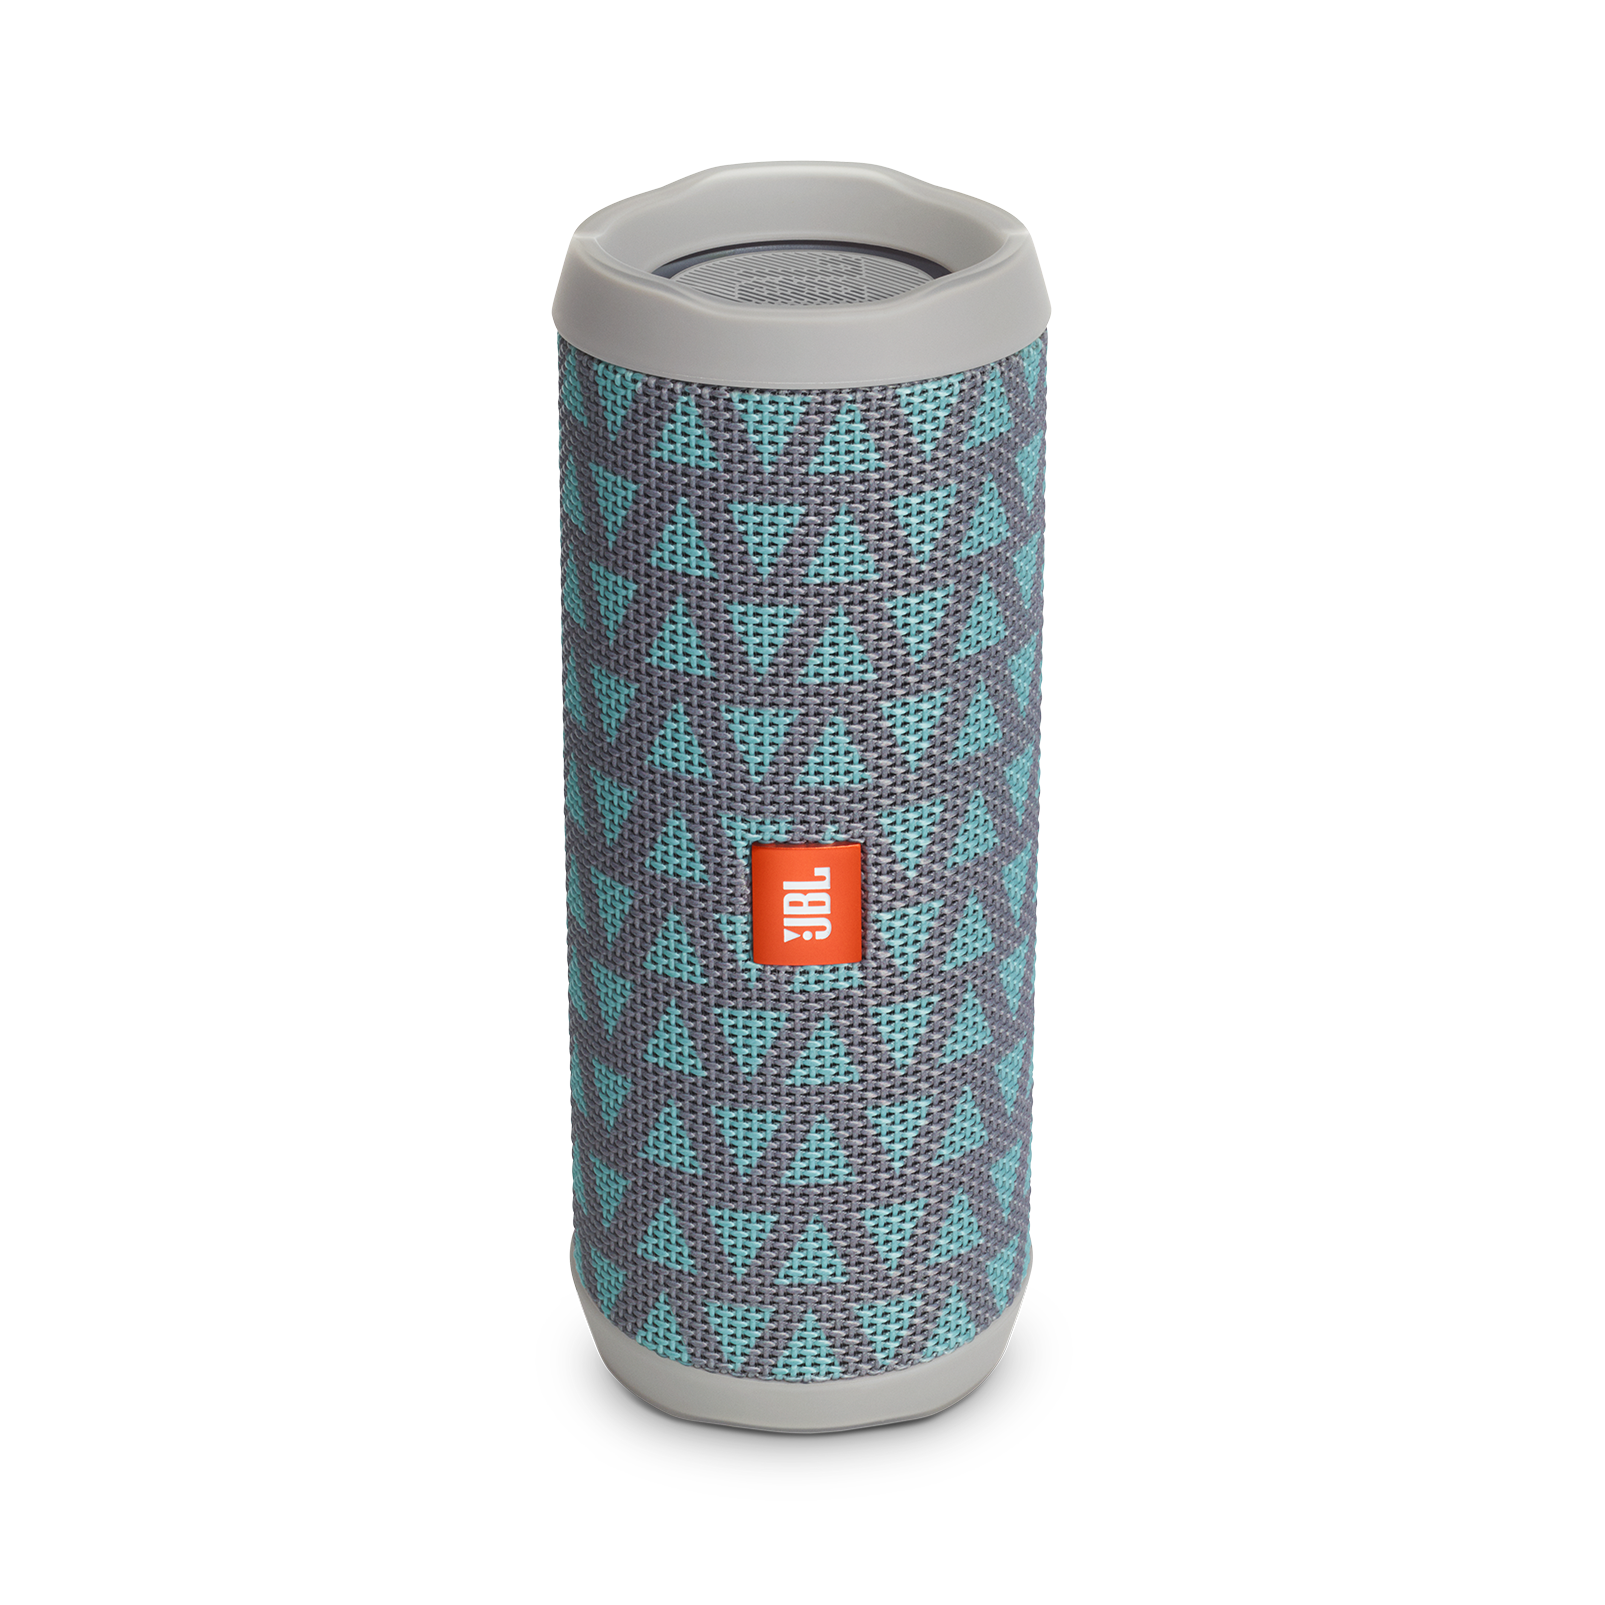 JBL Flip 4 Special Edition - Trio - A full-featured waterproof portable Bluetooth speaker with surprisingly powerful sound. - Hero